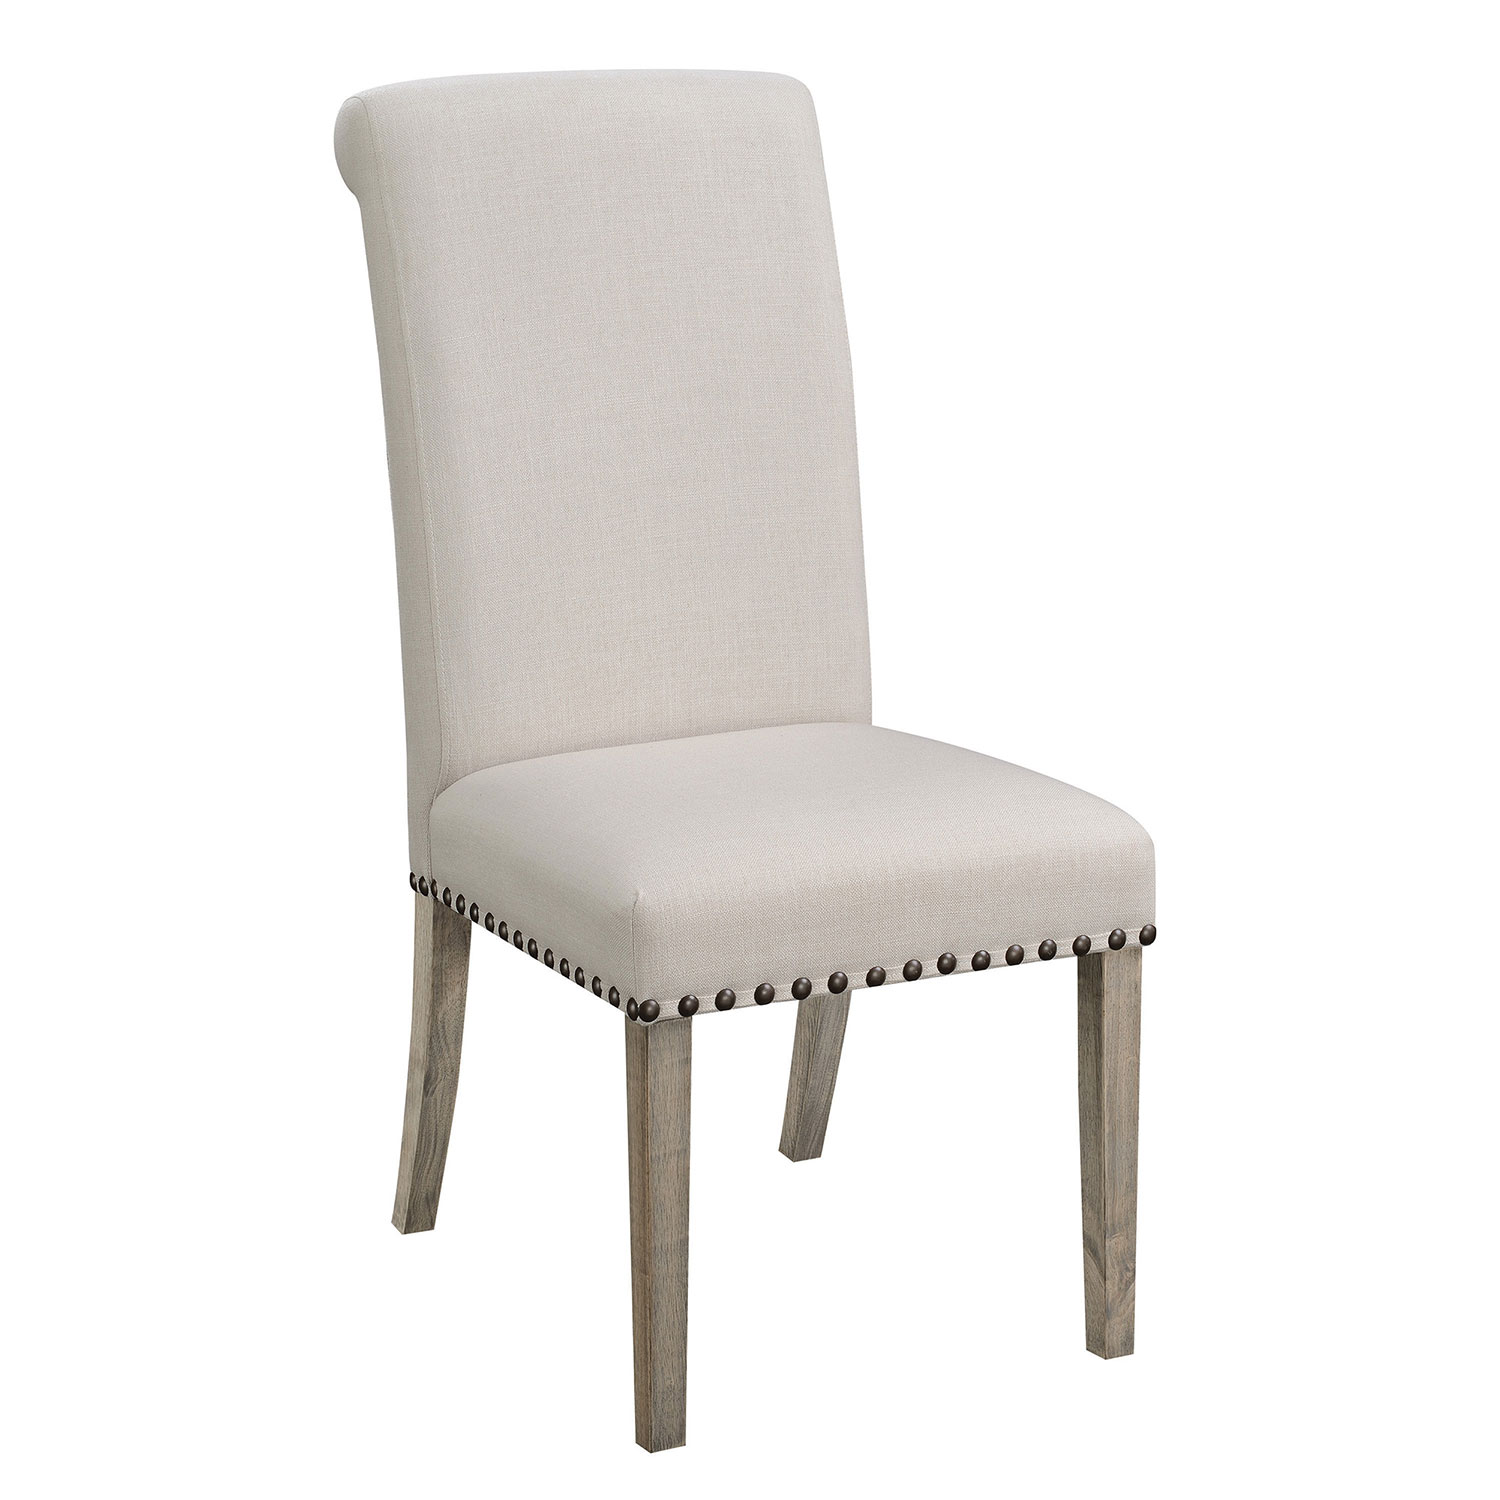 Coaster 190152 Side Chair - Beige